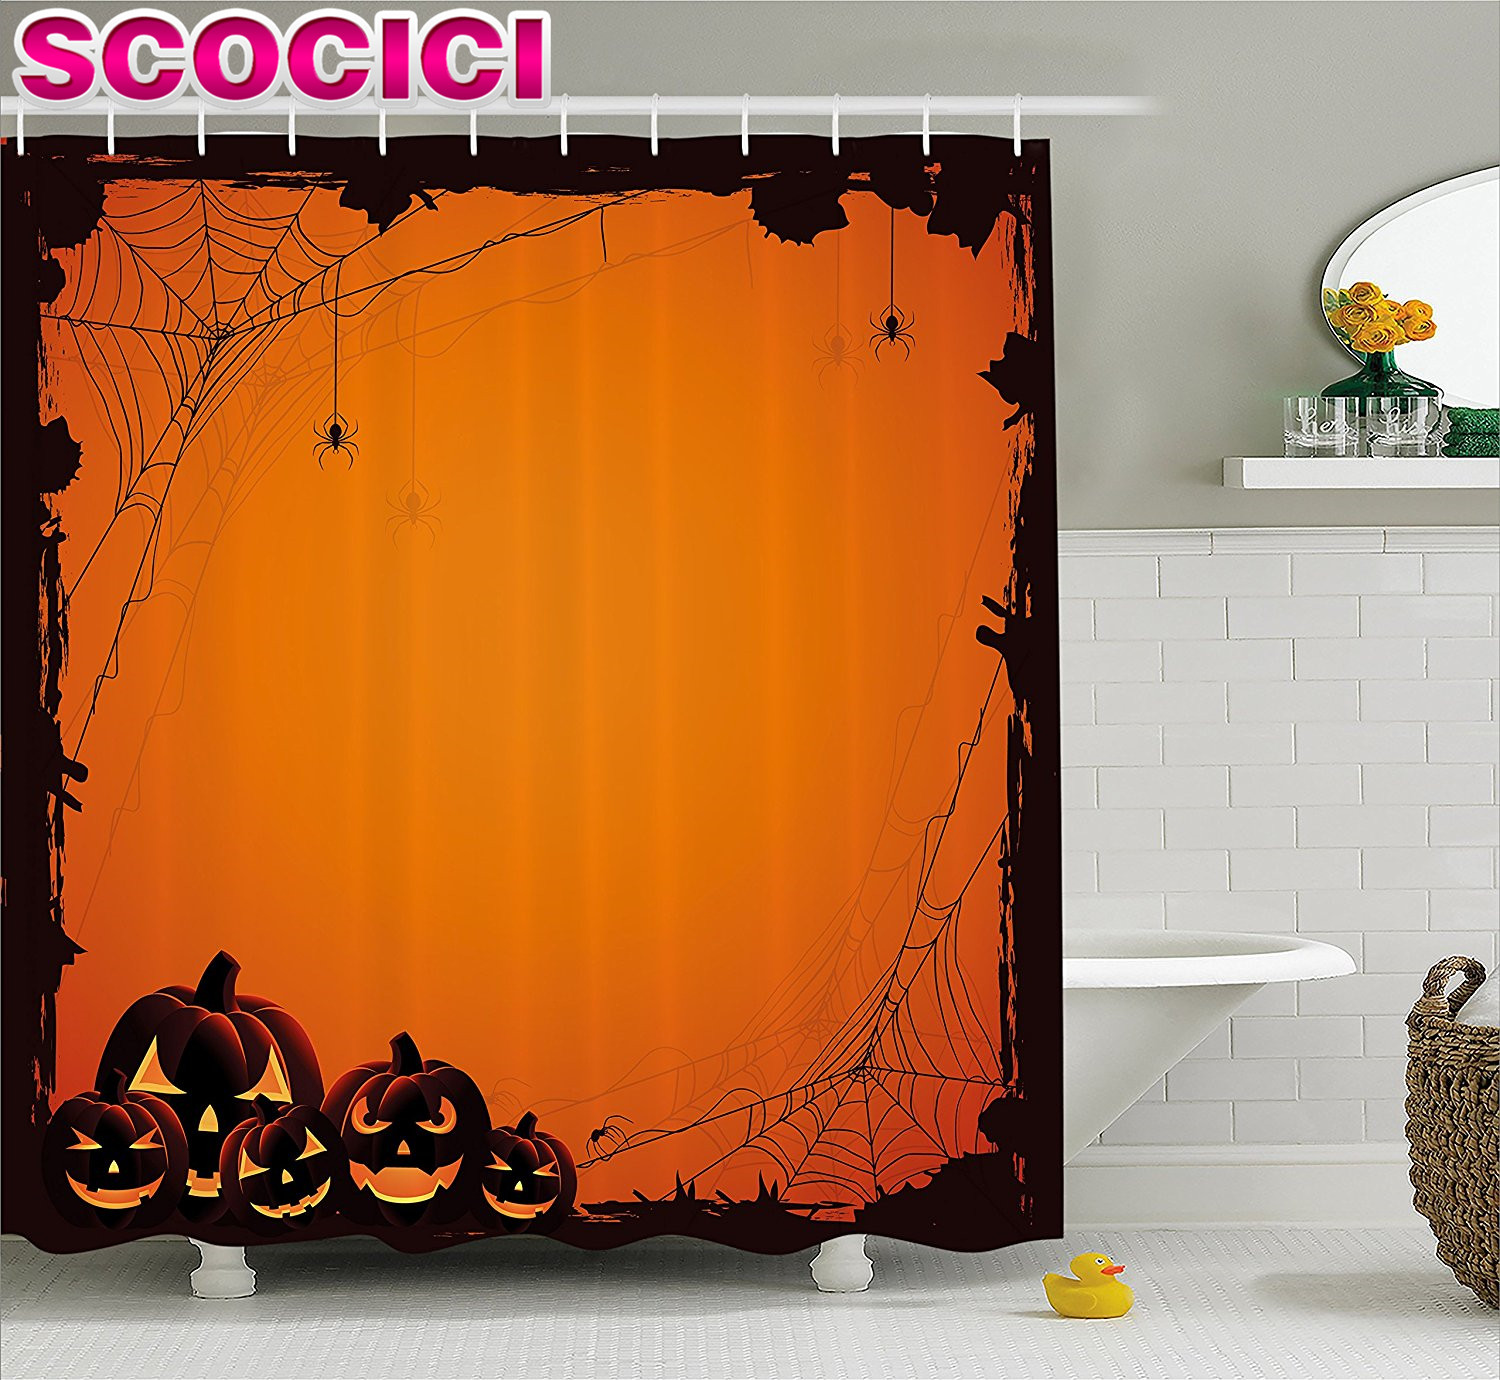 Halloween Decorations Shower Curtain Set Grunge Design Spider Web Pumpkins Horror Time Of The Year Trick